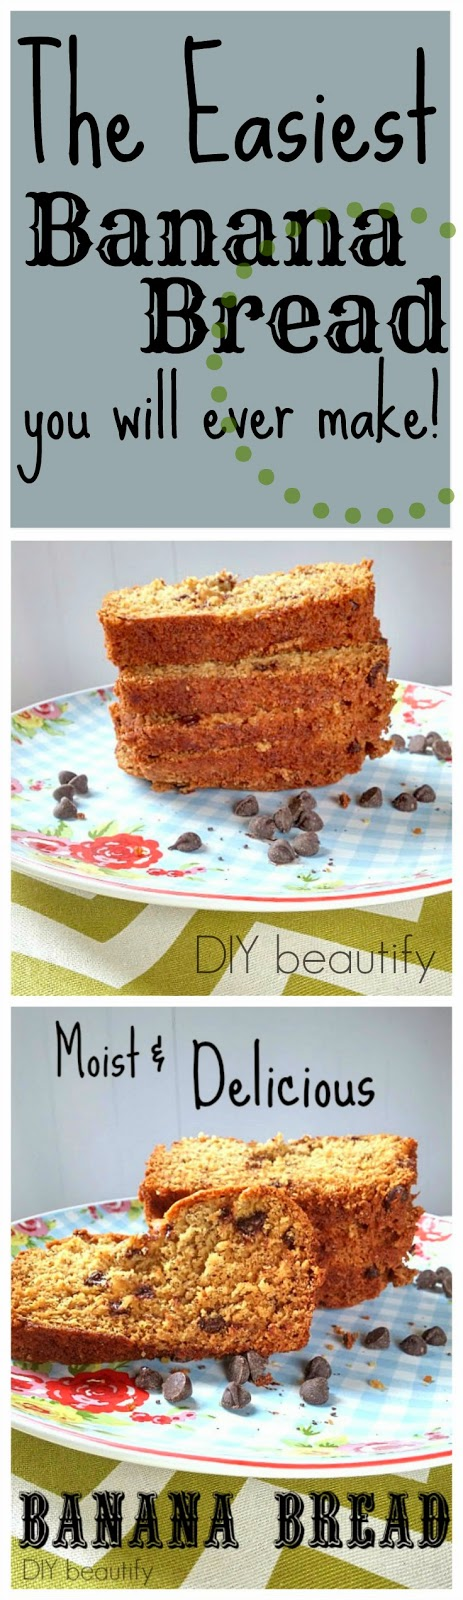 Banana Bread Recipe www.diybeautify.com